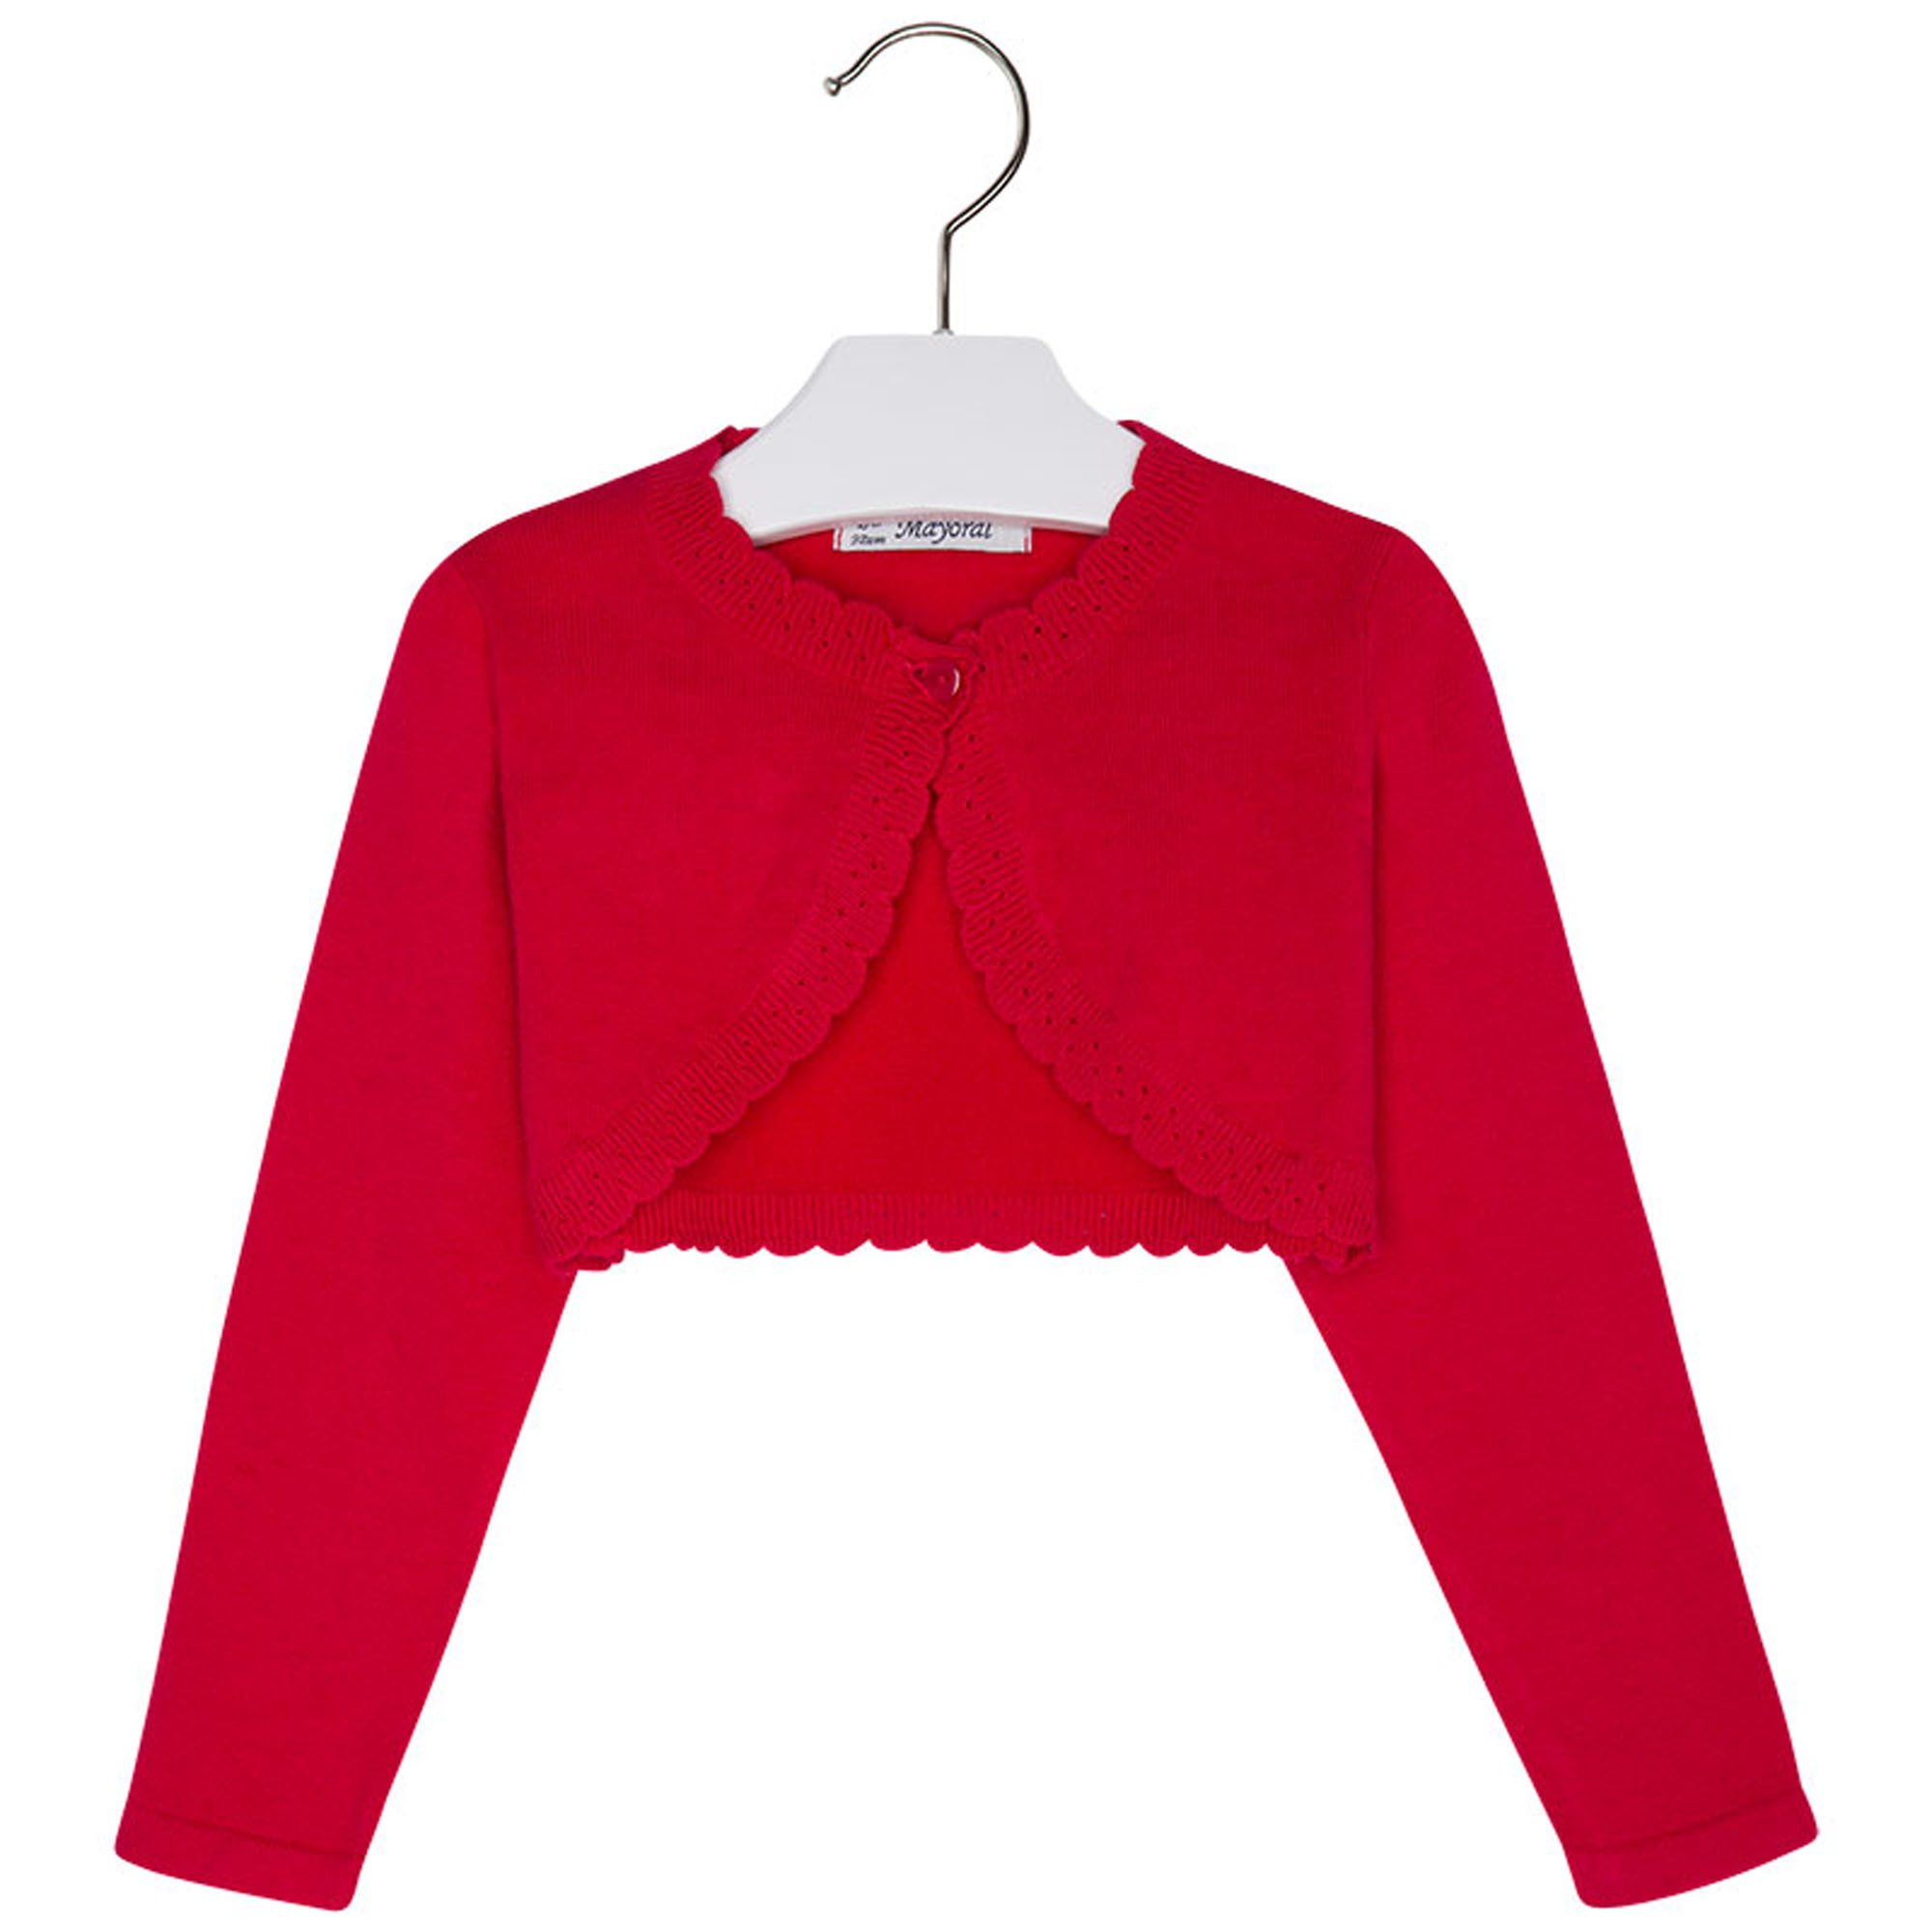 Mayoral Girls 2T-9 Red Scallop Edge Knit Shrug Cardigan Sweater, Red,3